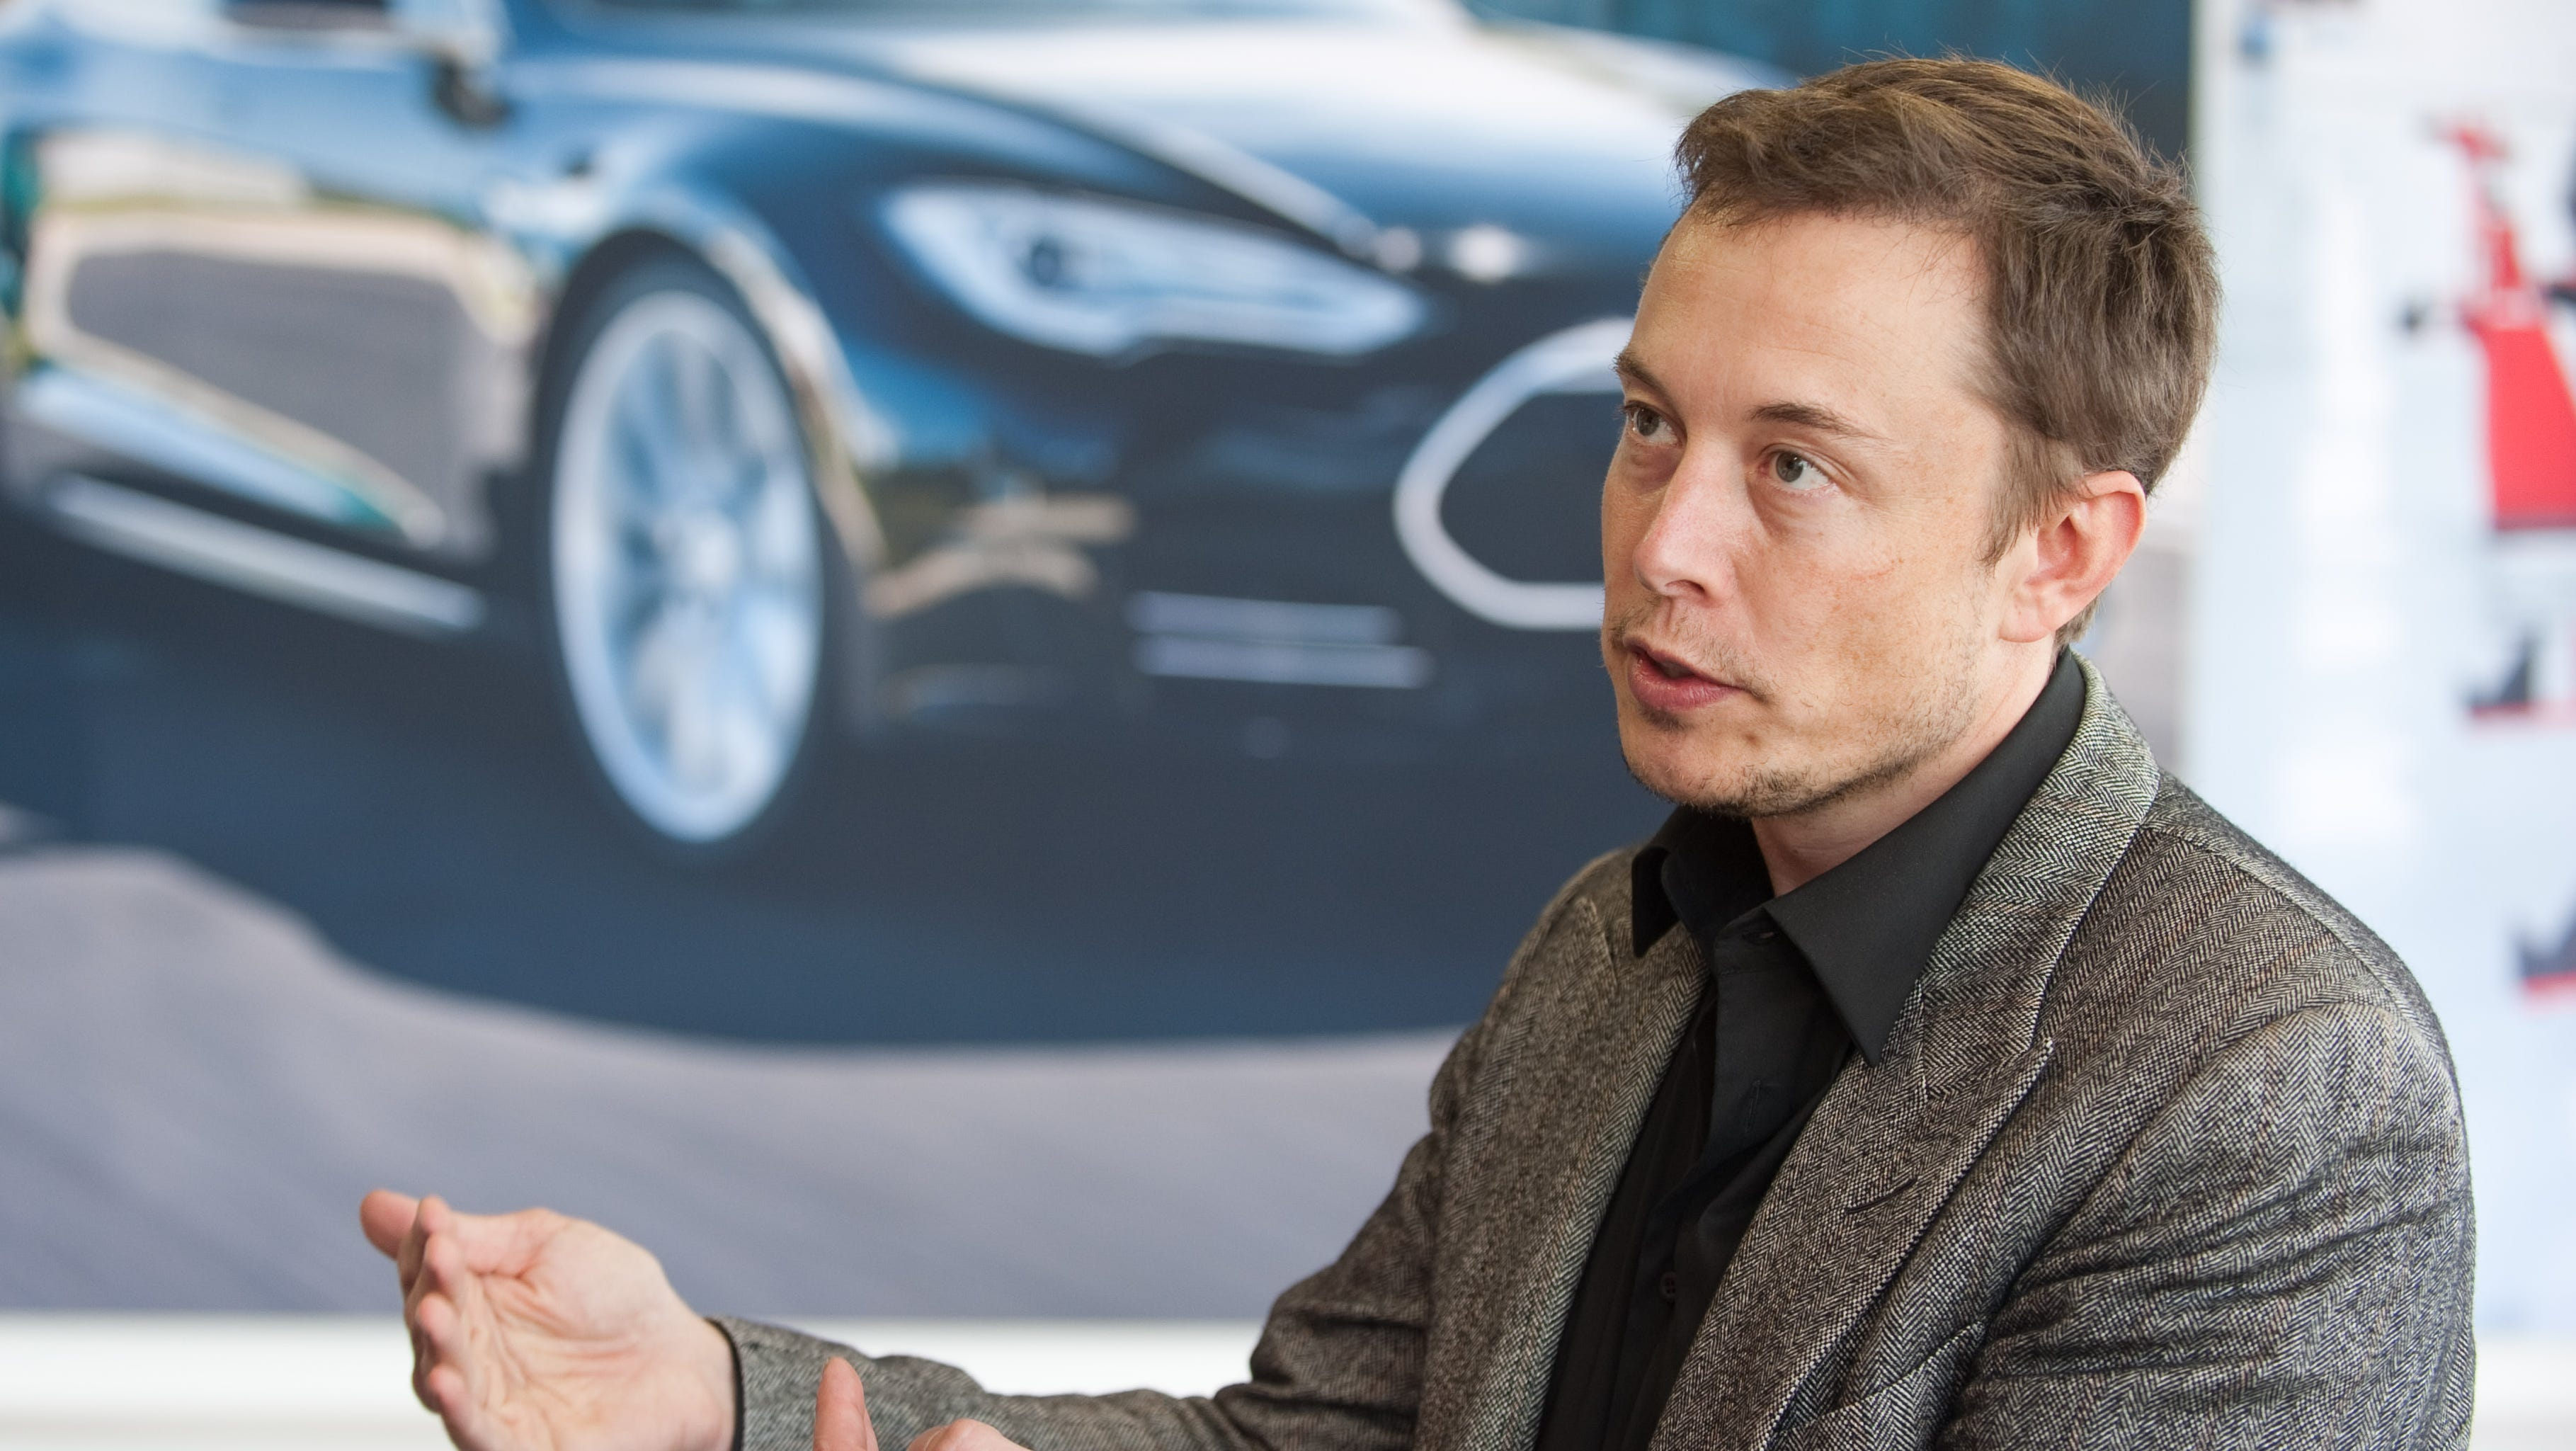 Elon Musk, co-founder and CEO, of Tesla Motors, is the entrepreneurial darling of the business world. Musk is also the business and scientific mind behind SpaceX, and strives to use the free market to solve some of the world's most pressing problems.